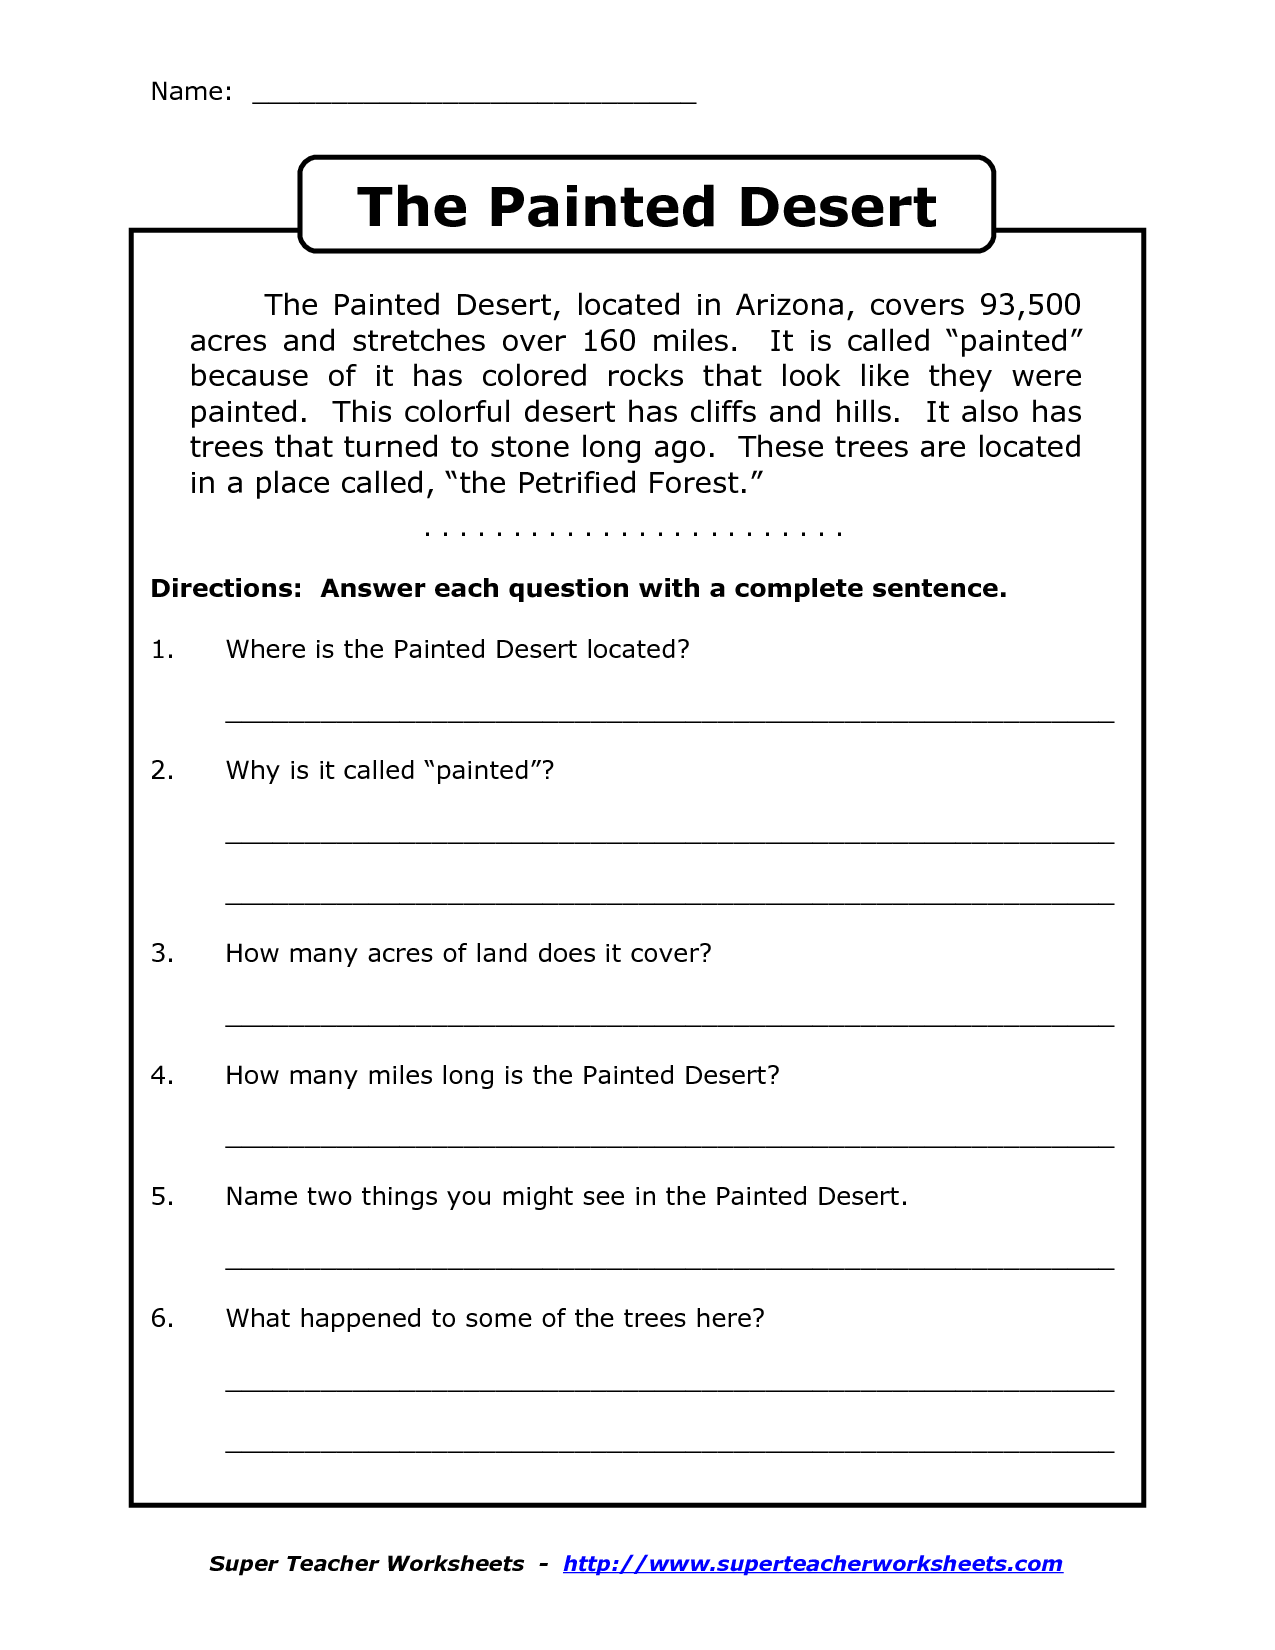 worksheet 1st Grade Reading Comprehension Worksheets Free reading worksheets for 4th grade comprehension 3 name the painted desert